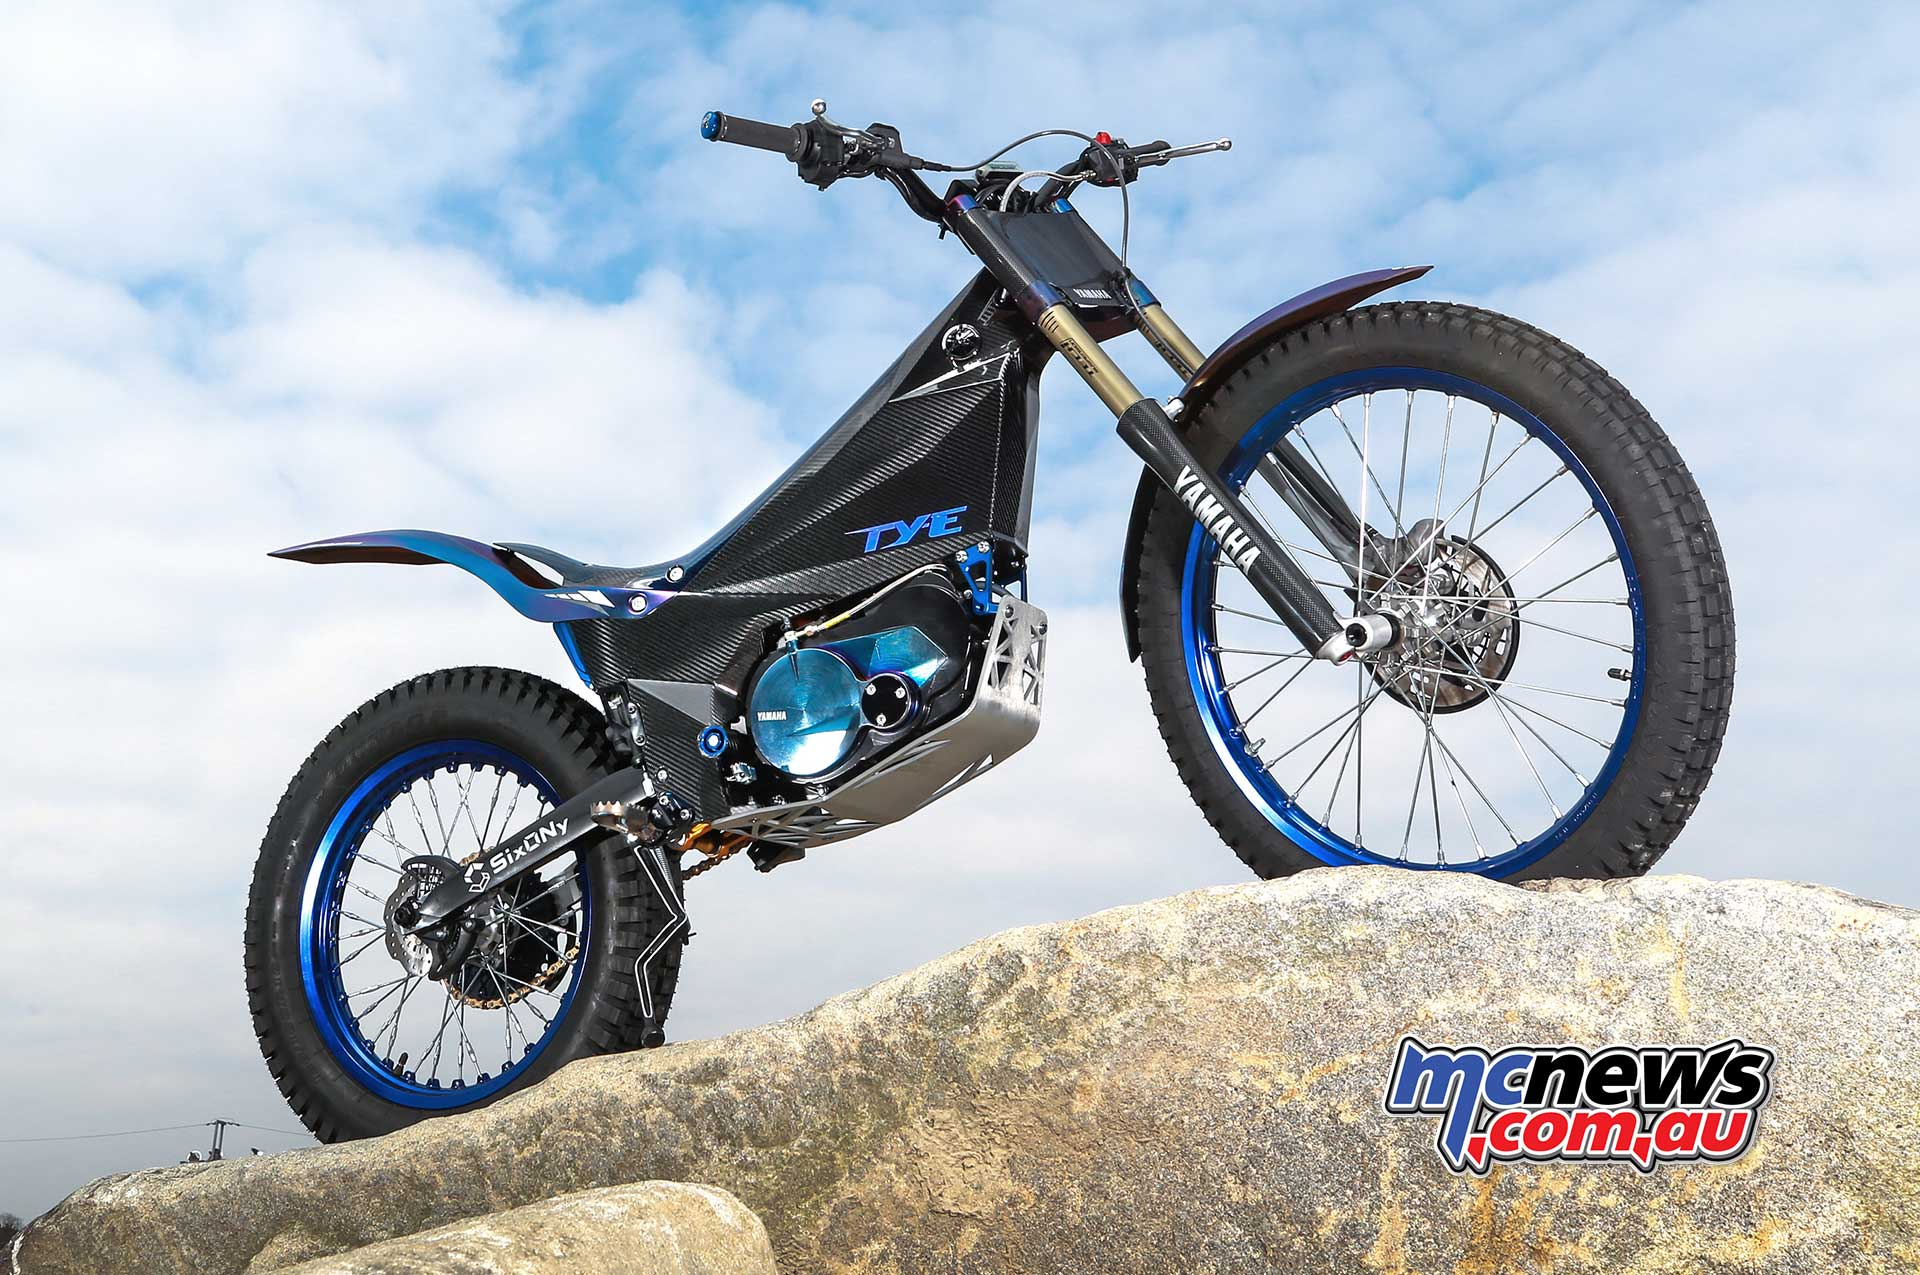 yamaha ty e trial bike enters 2018 fim trial e cup. Black Bedroom Furniture Sets. Home Design Ideas